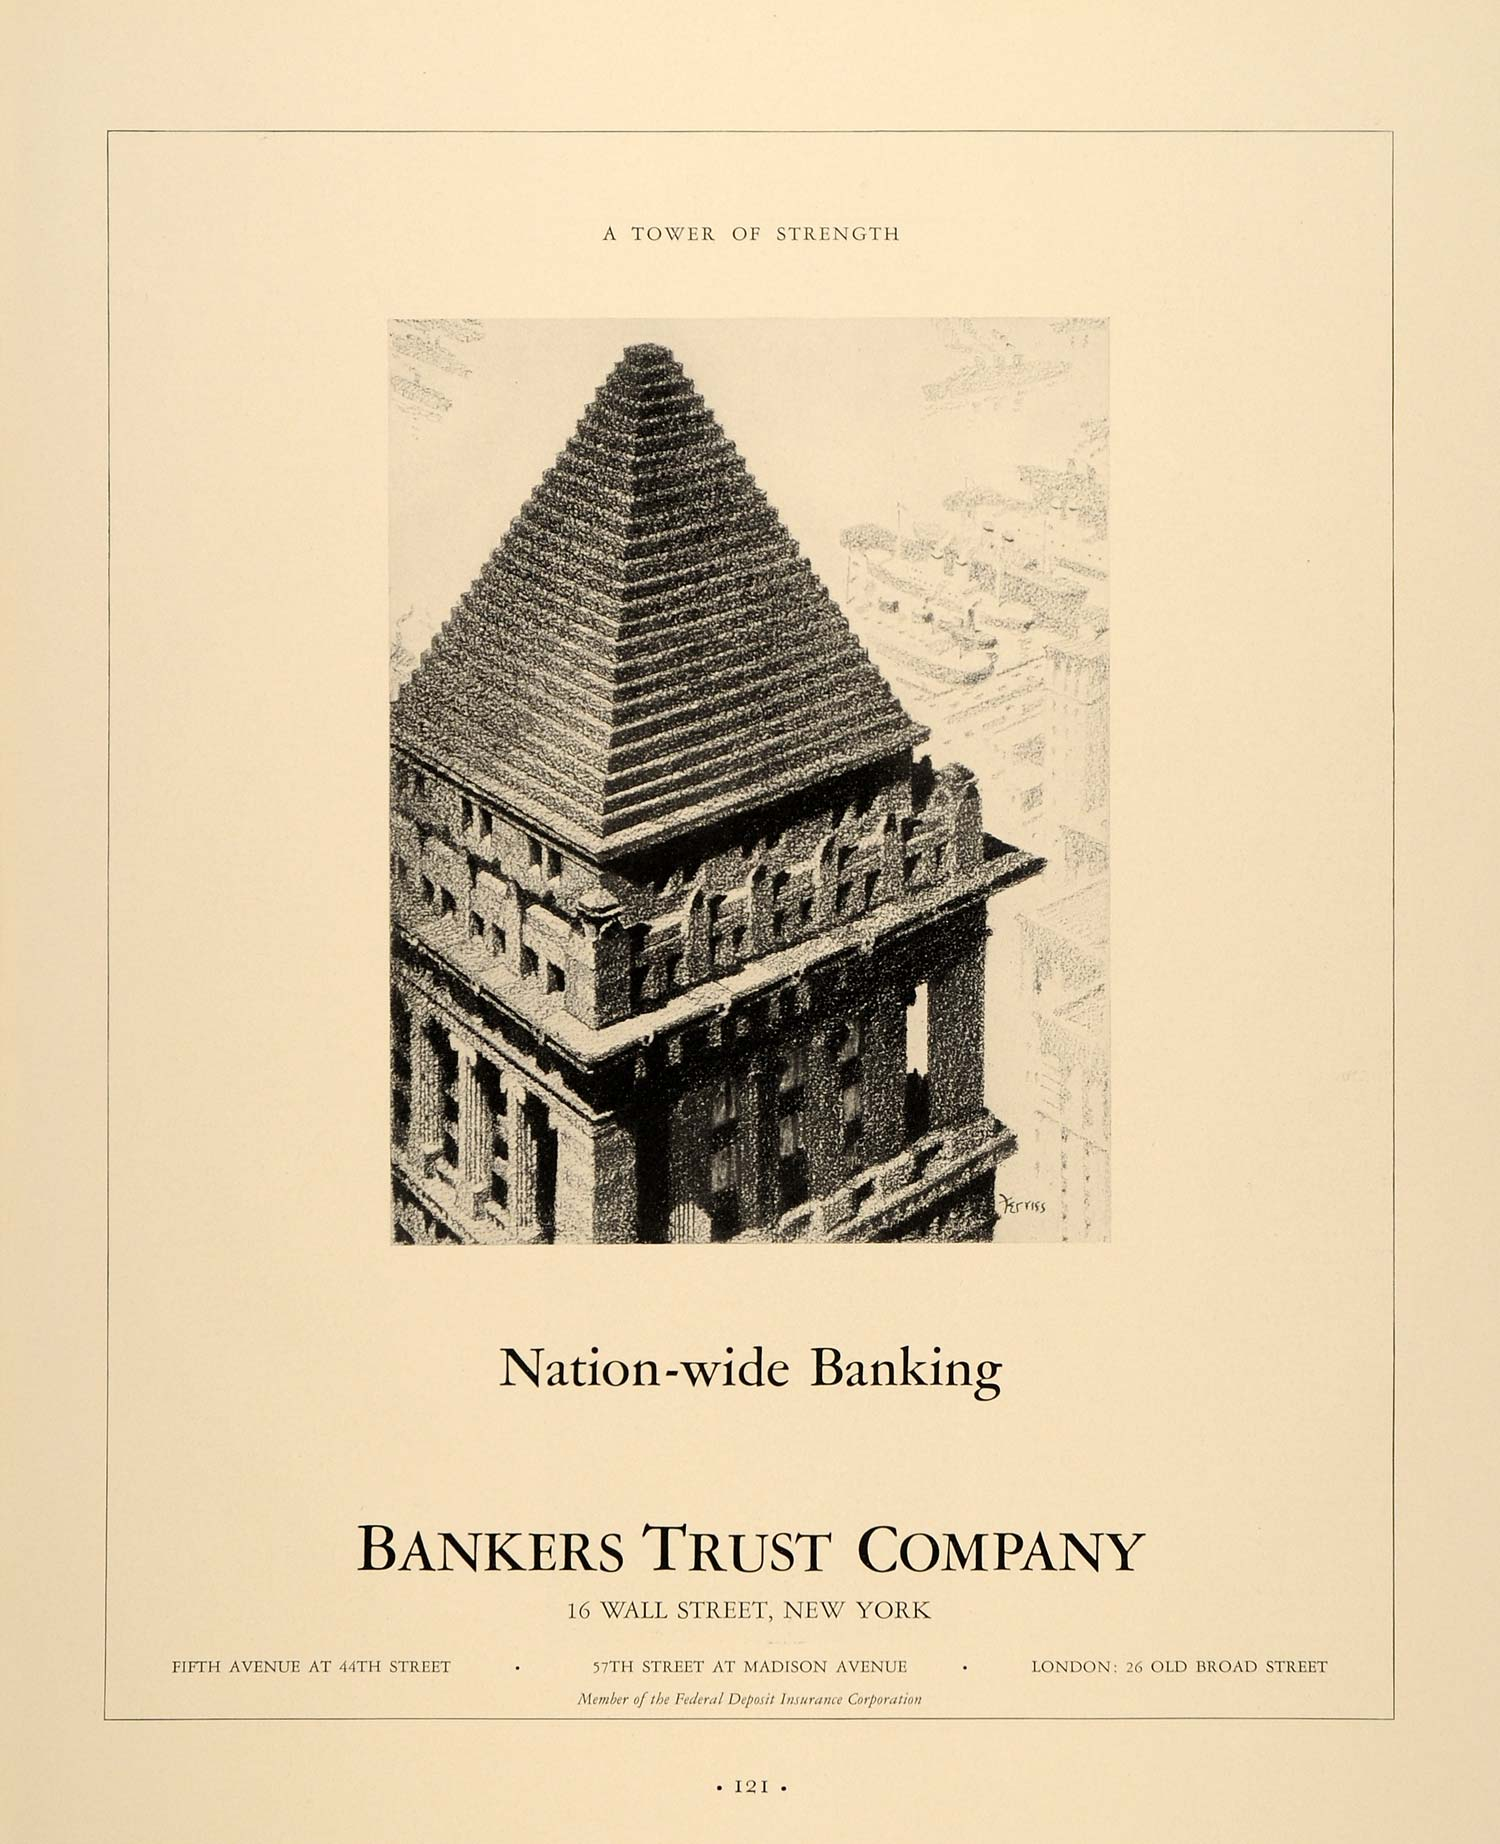 1937 Ad Banking Bankers Trust Company 16 Wall Street - ORIGINAL ADVERTISING FTT9